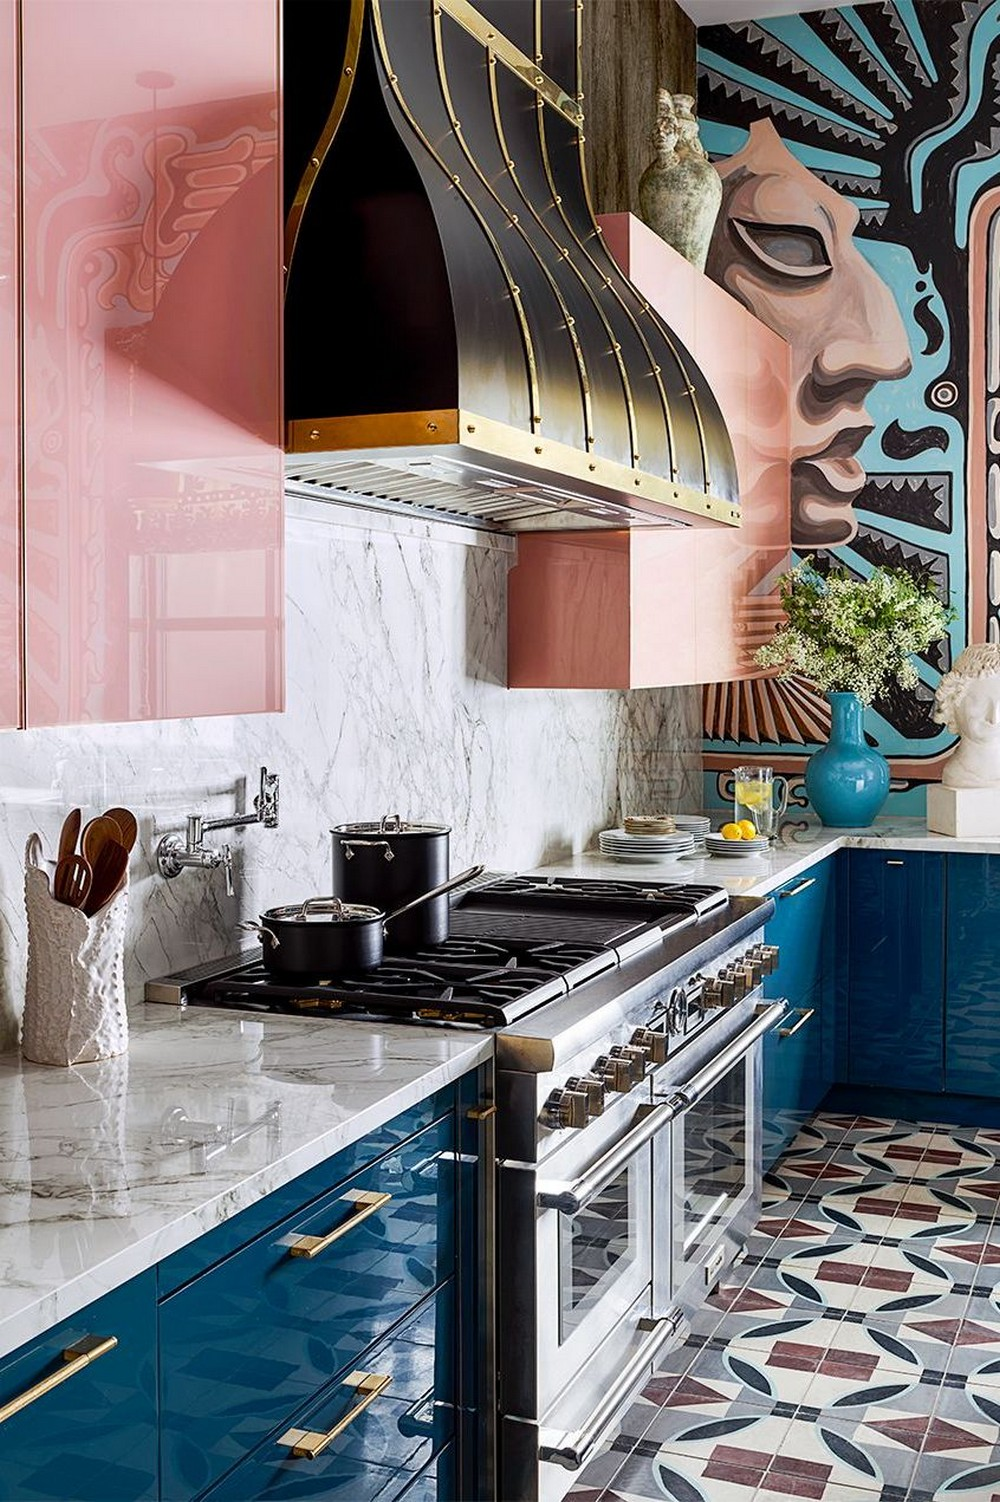 Fashion Your Luxury Kitchen with These Astounding Cabinet Paint Colors 3 luxury kitchen Fashion Your Luxury Kitchen with These Astounding Cabinet Paint Colors Fashion Your Luxury Kitchen with These Astounding Cabinet Paint Colors 3